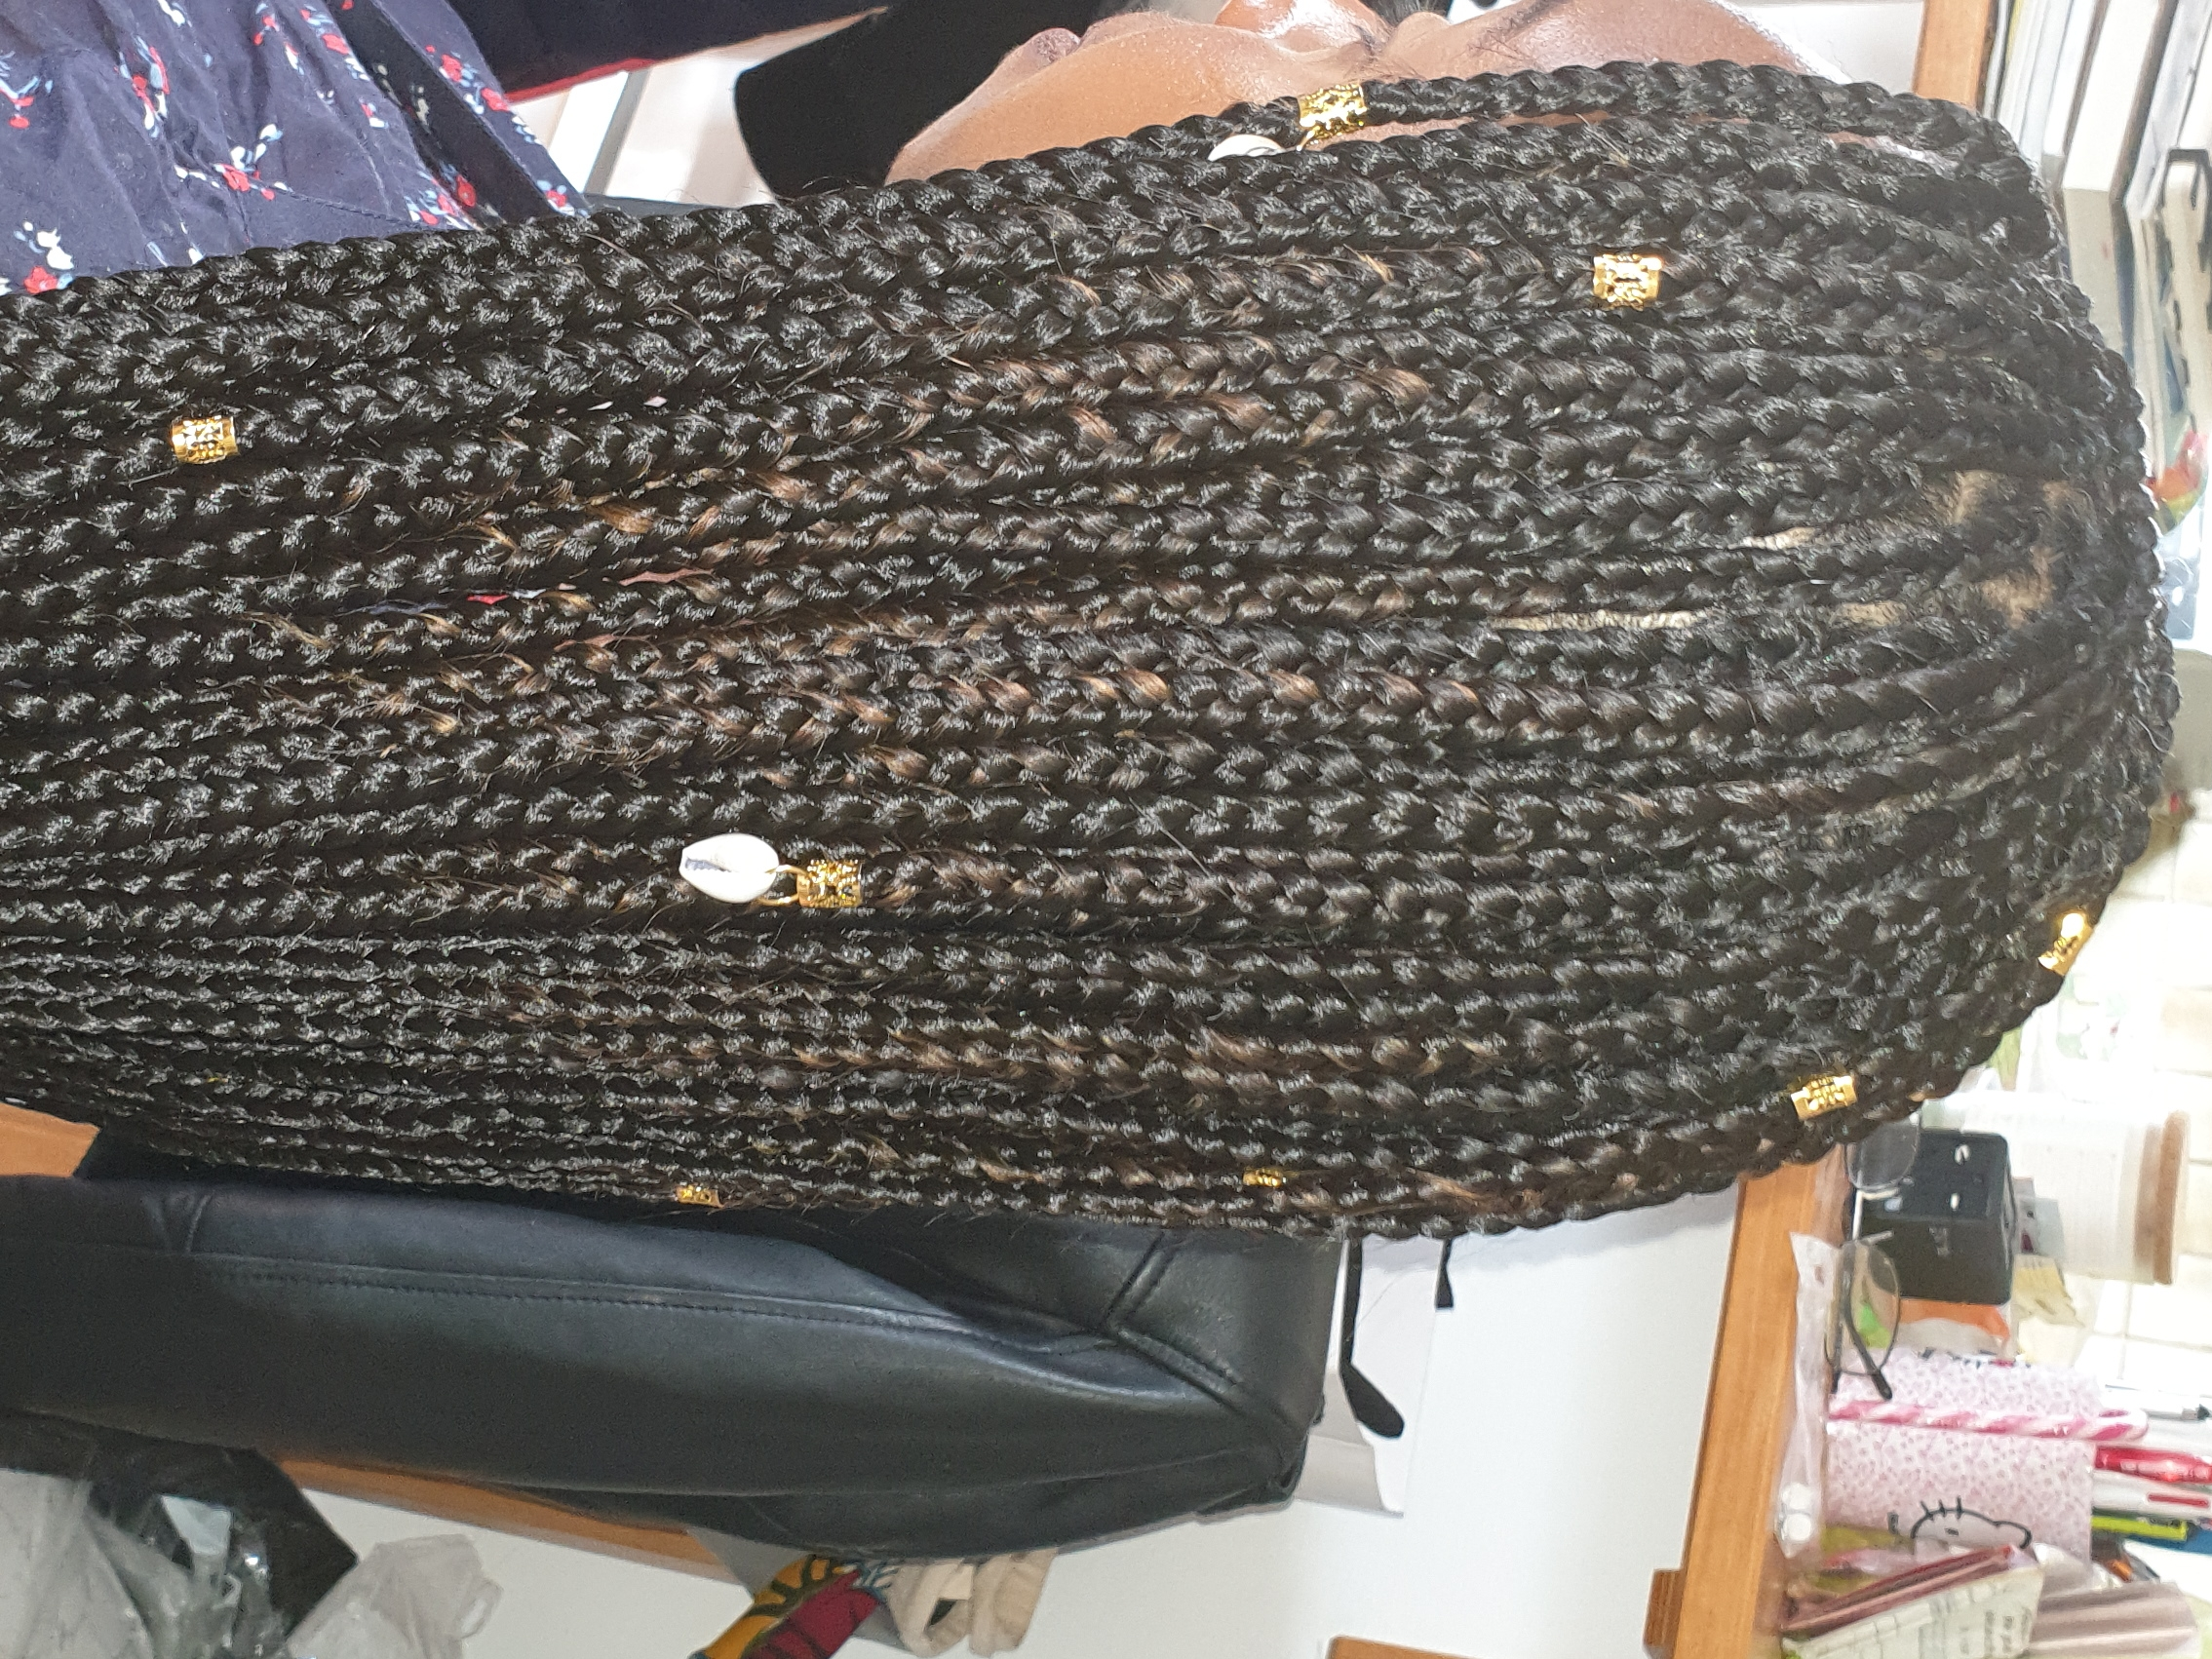 salon de coiffure afro tresse tresses box braids crochet braids vanilles tissages paris 75 77 78 91 92 93 94 95 OZWTSXJL